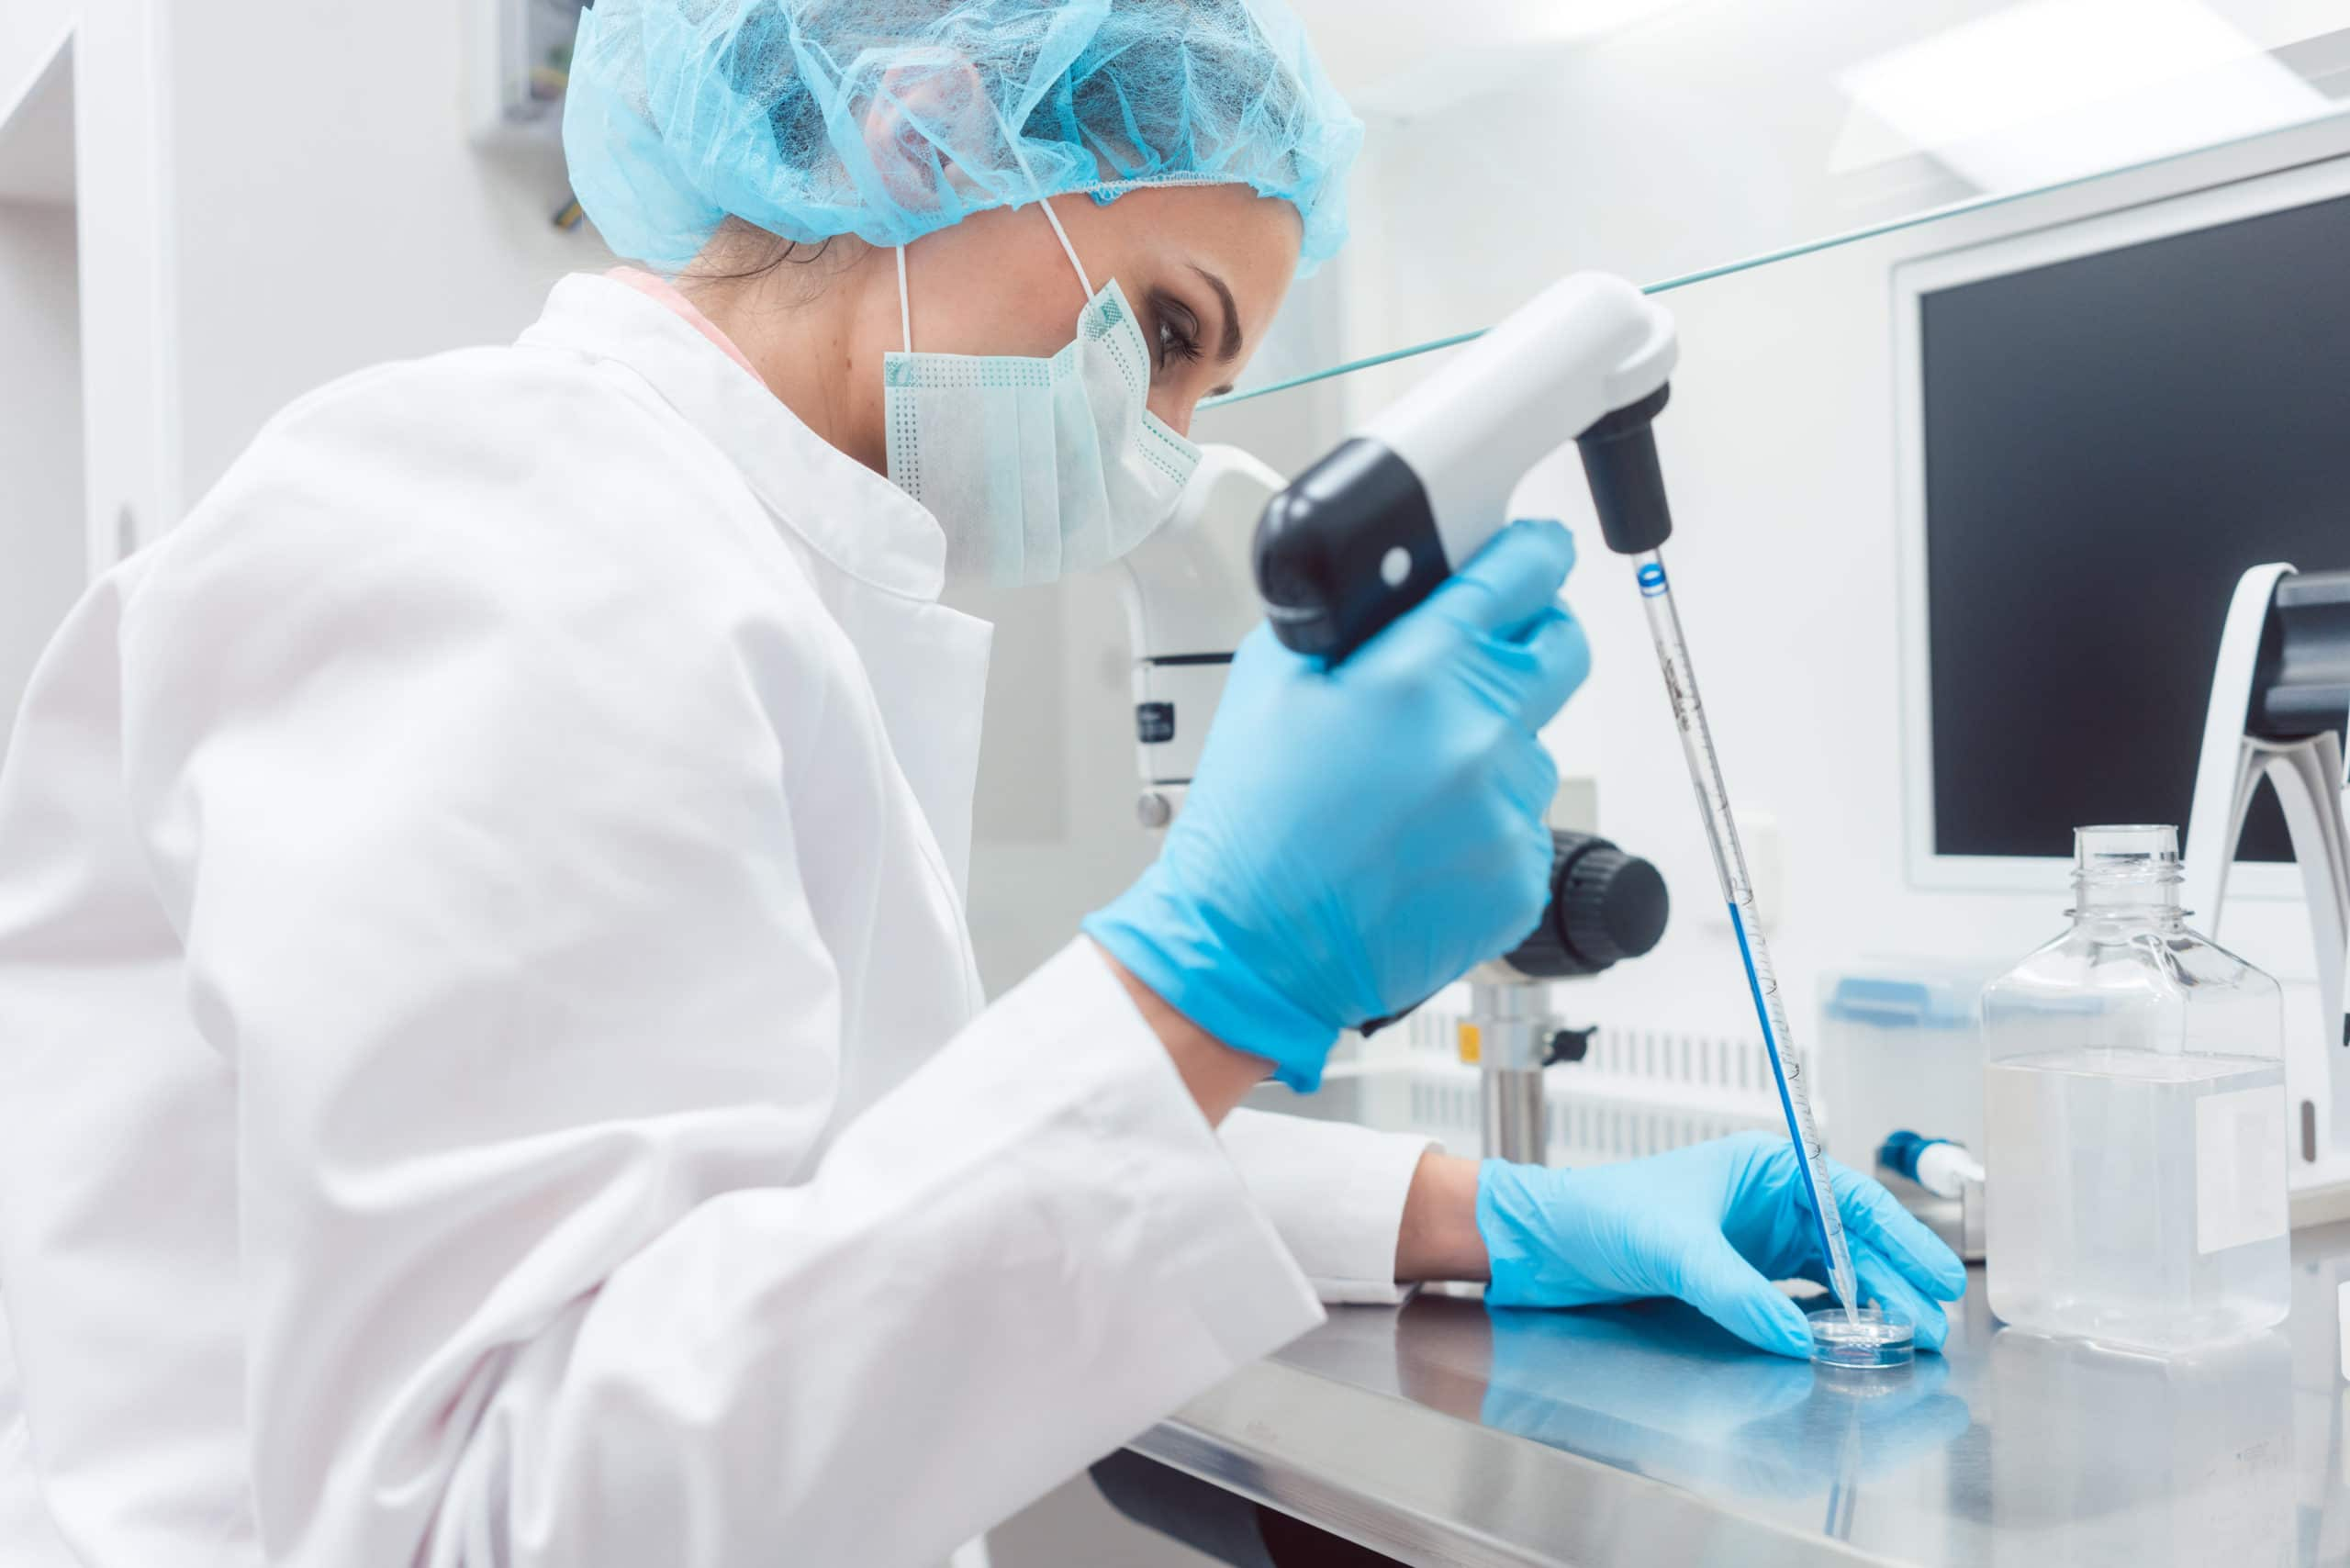 Scientist in lab conducting biotechnological experiment using pi